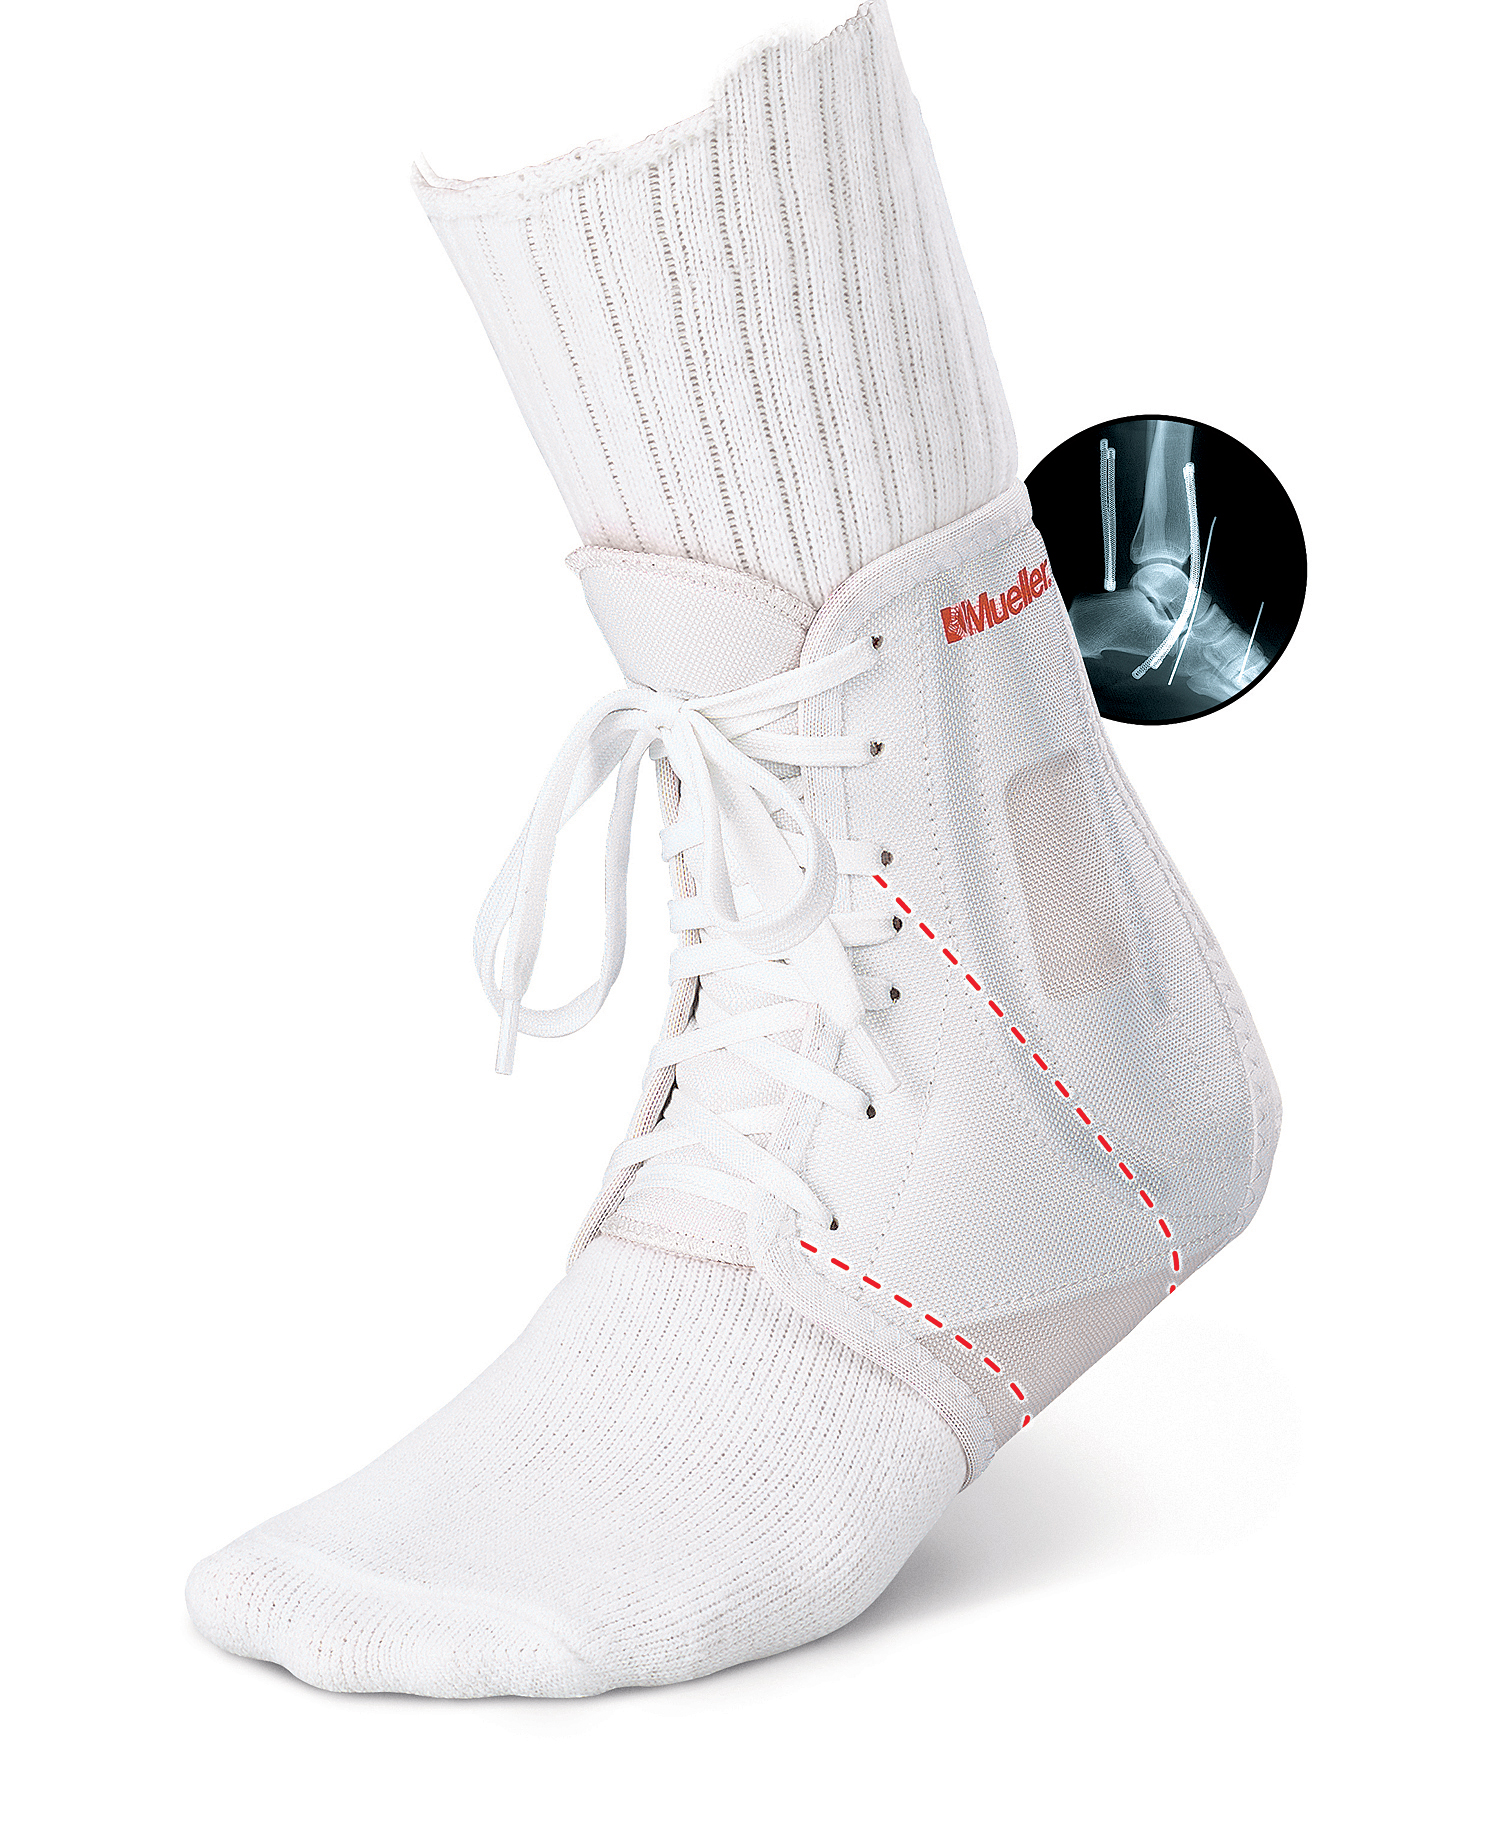 pro-level-atf-ankle-brace-white-lg-212lg-74676212142-lr.jpg